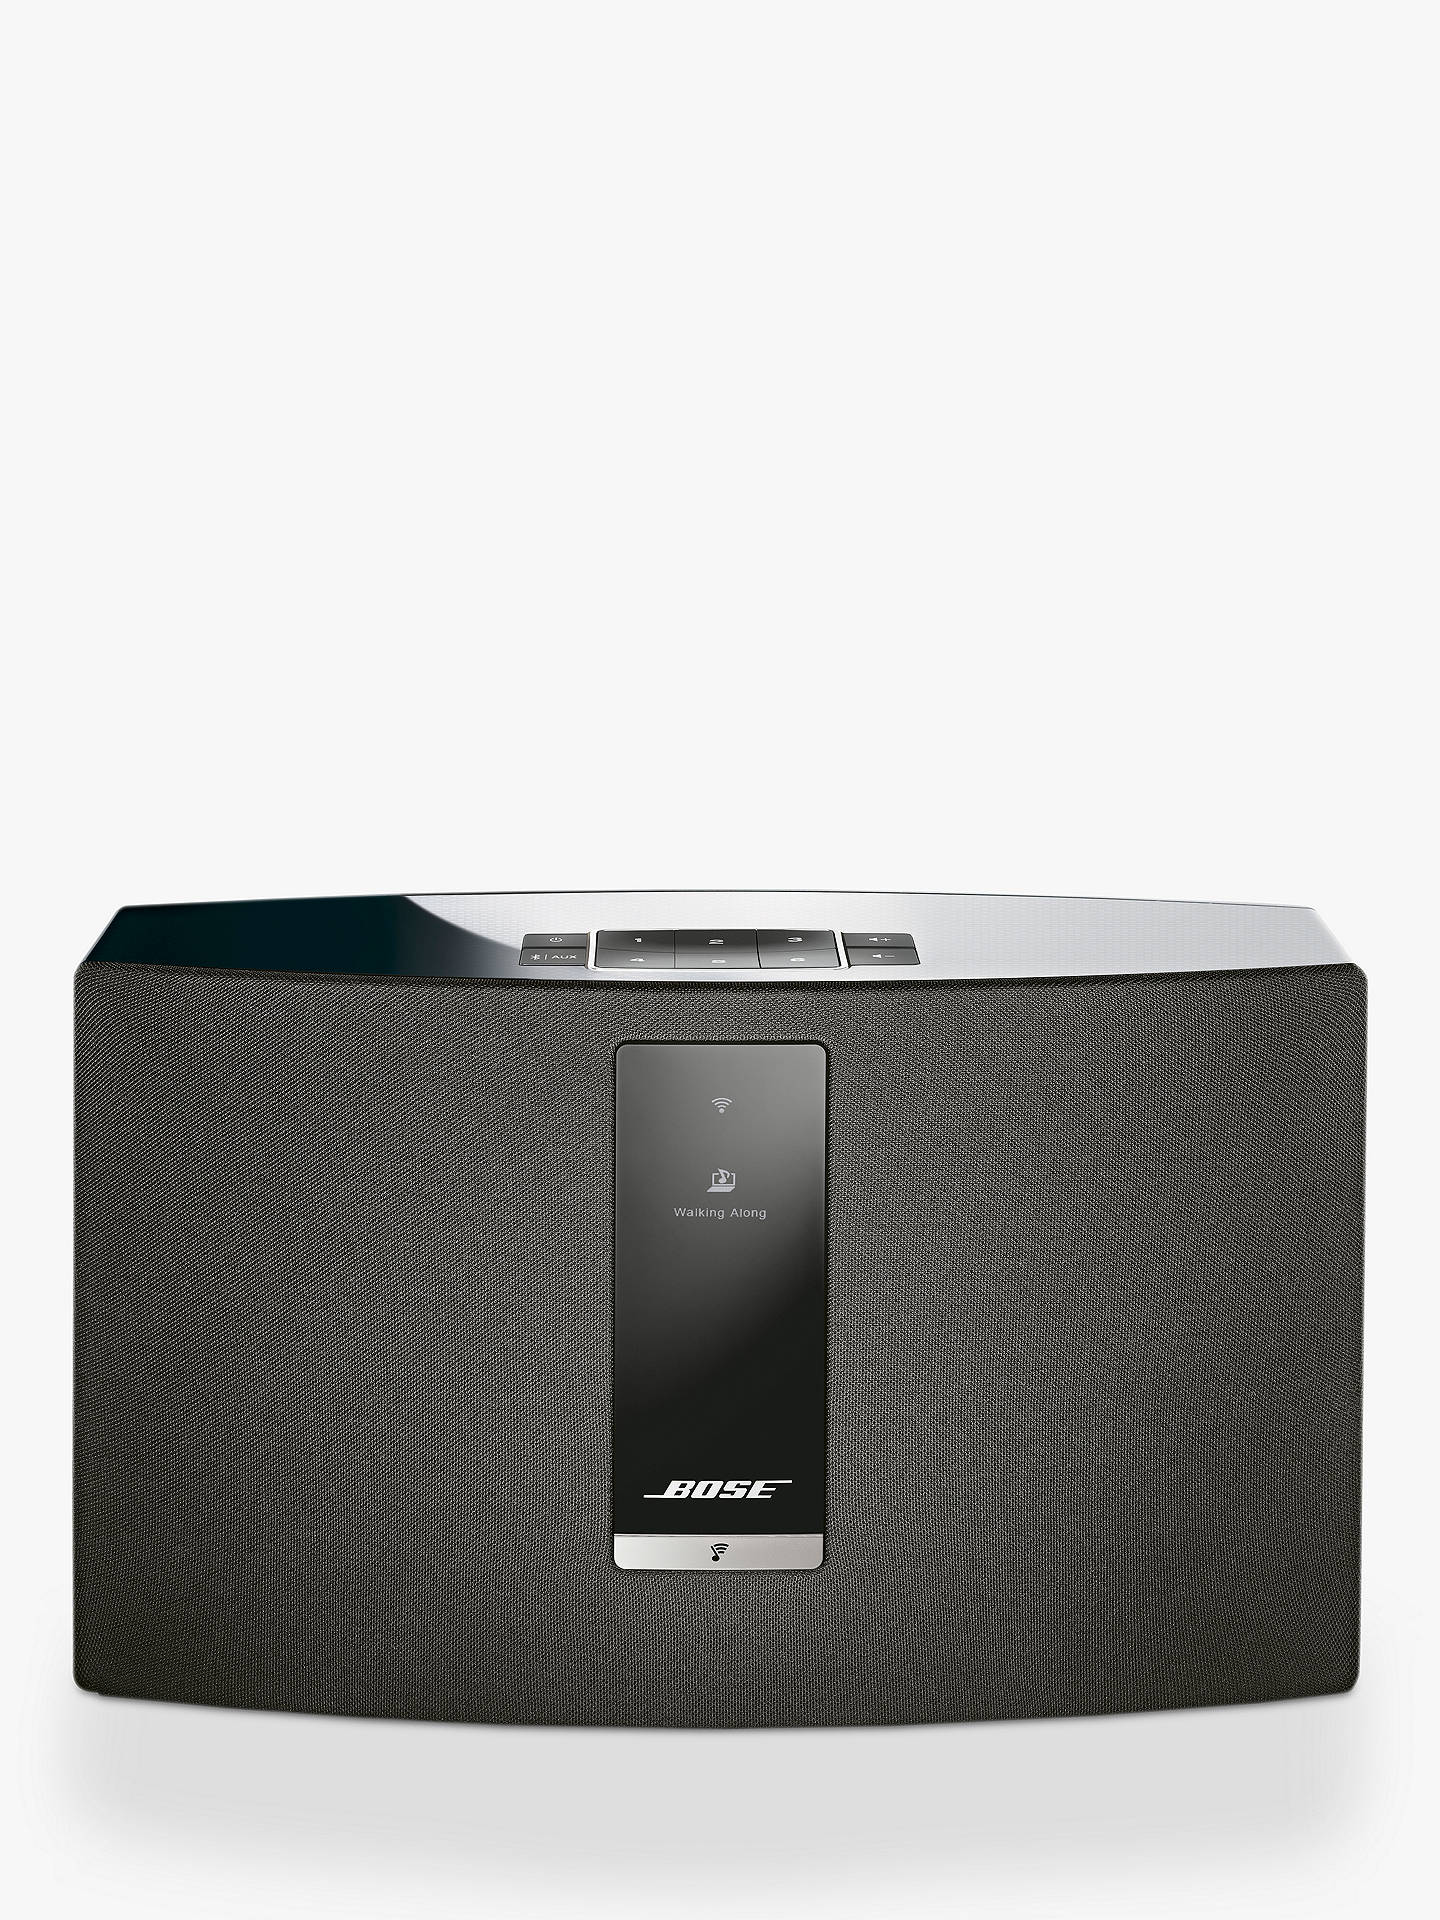 BuyBose® SoundTouch™ 20 Series III Wireless Wi-Fi Bluetooth Music System 2194a1ae49bc8